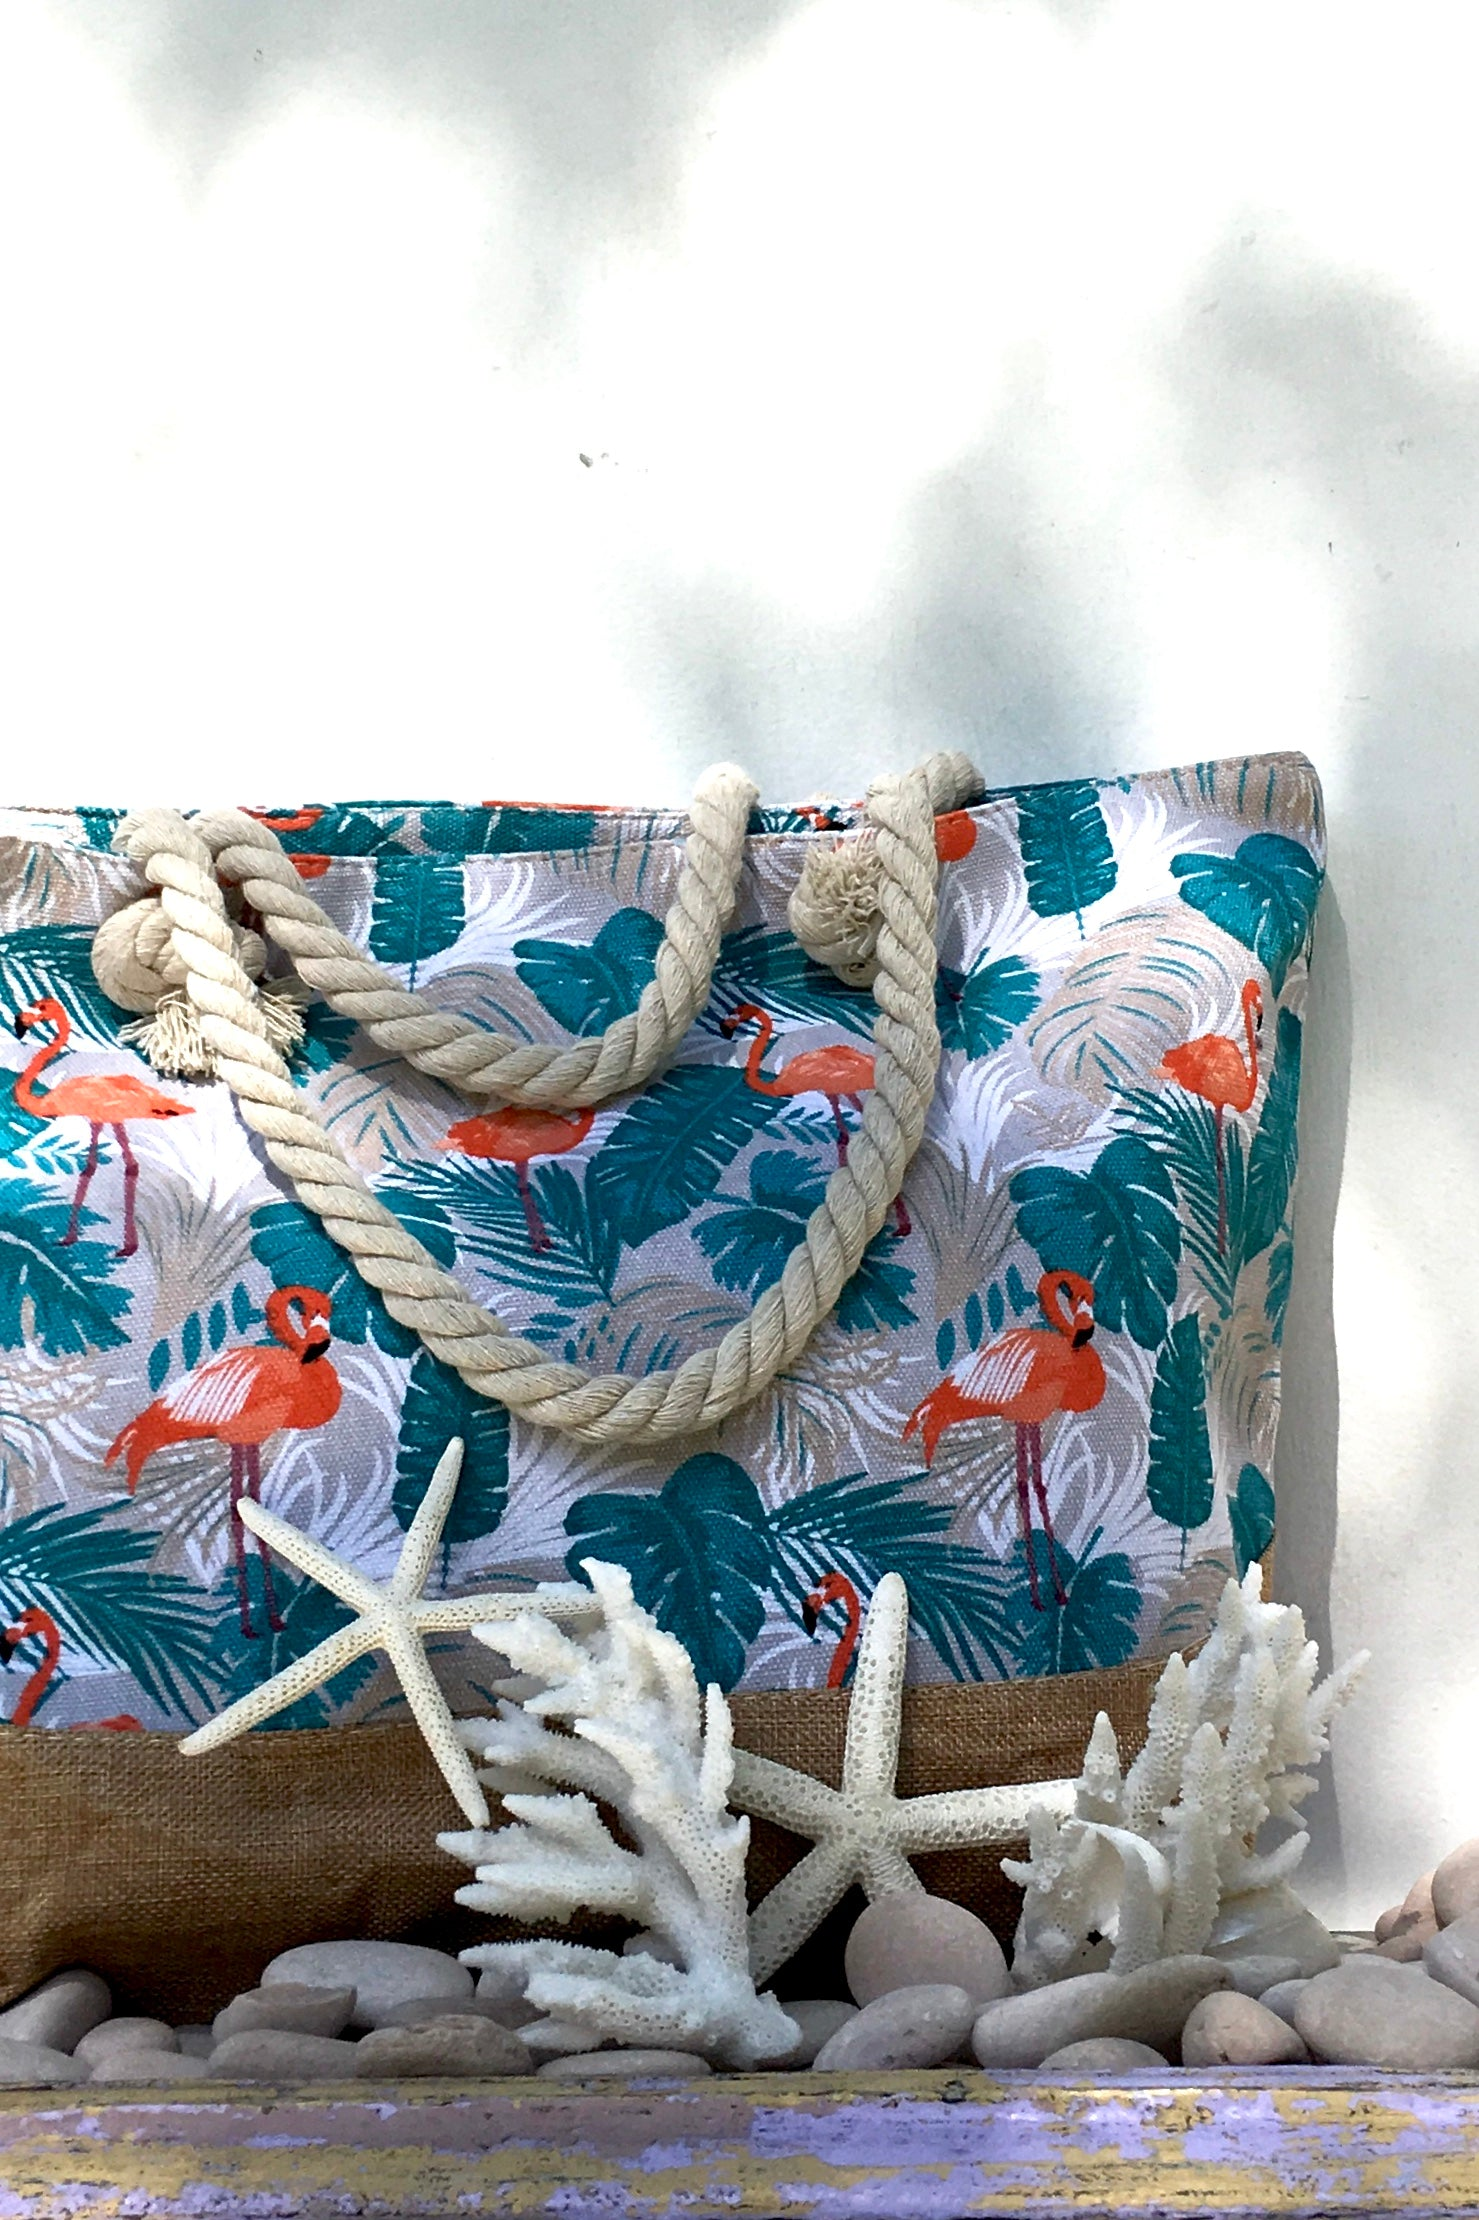 Yeah Canvas Beach Bag, big rope handled shopping bag in tropical style, bohemian luxe fashion